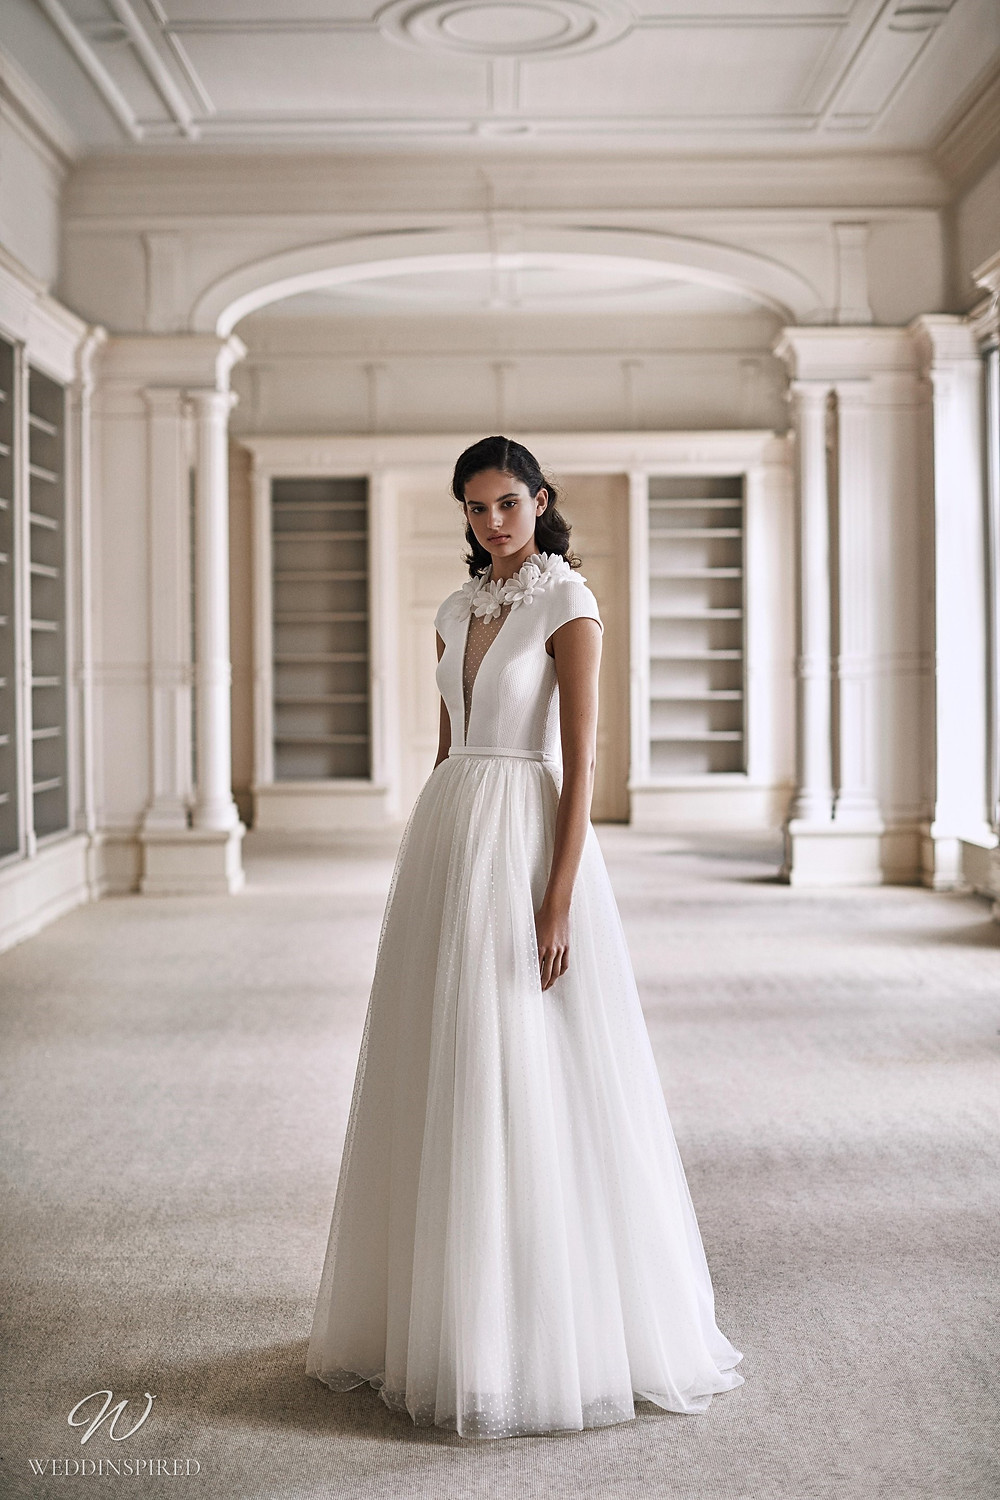 A Viktor & Rolf 2021 A-line wedding dress with polka dot tulle, cap sleeves and flowers